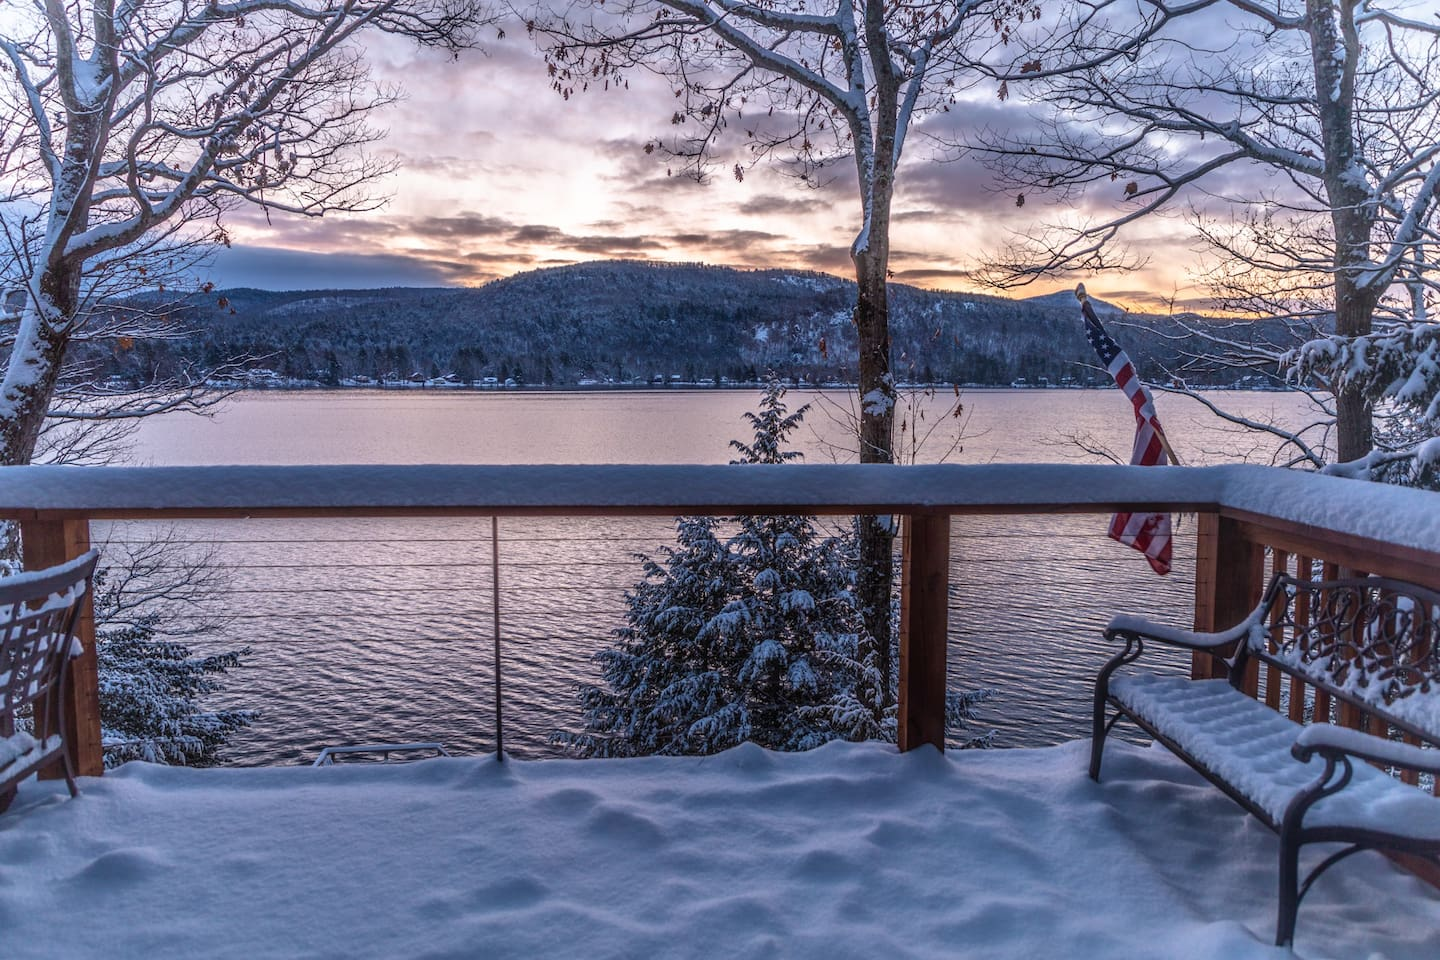 Winter mornings are just as amazing at the lake!